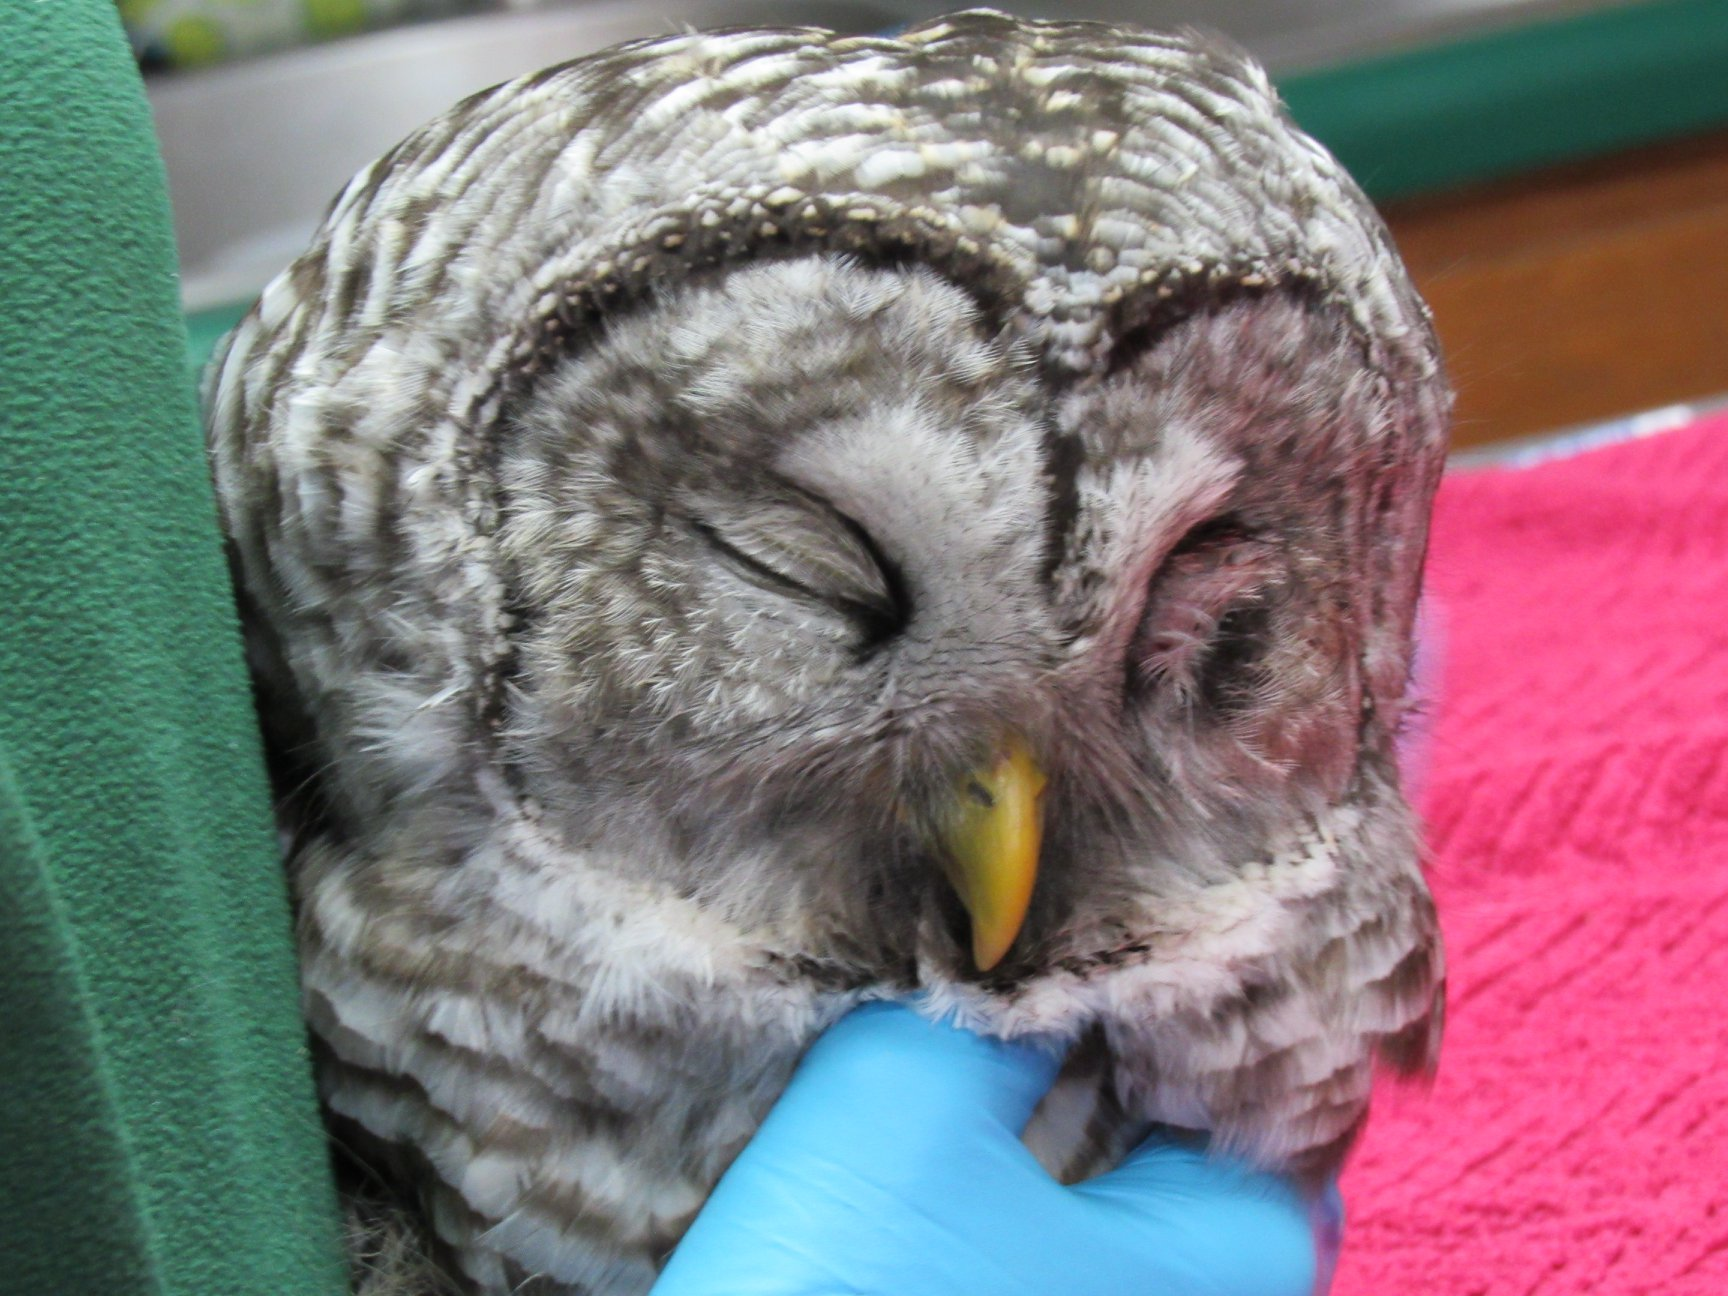 The Barred Owl was hit by a vehicle. He has a wing fracture, head injury and some internal bleeding.